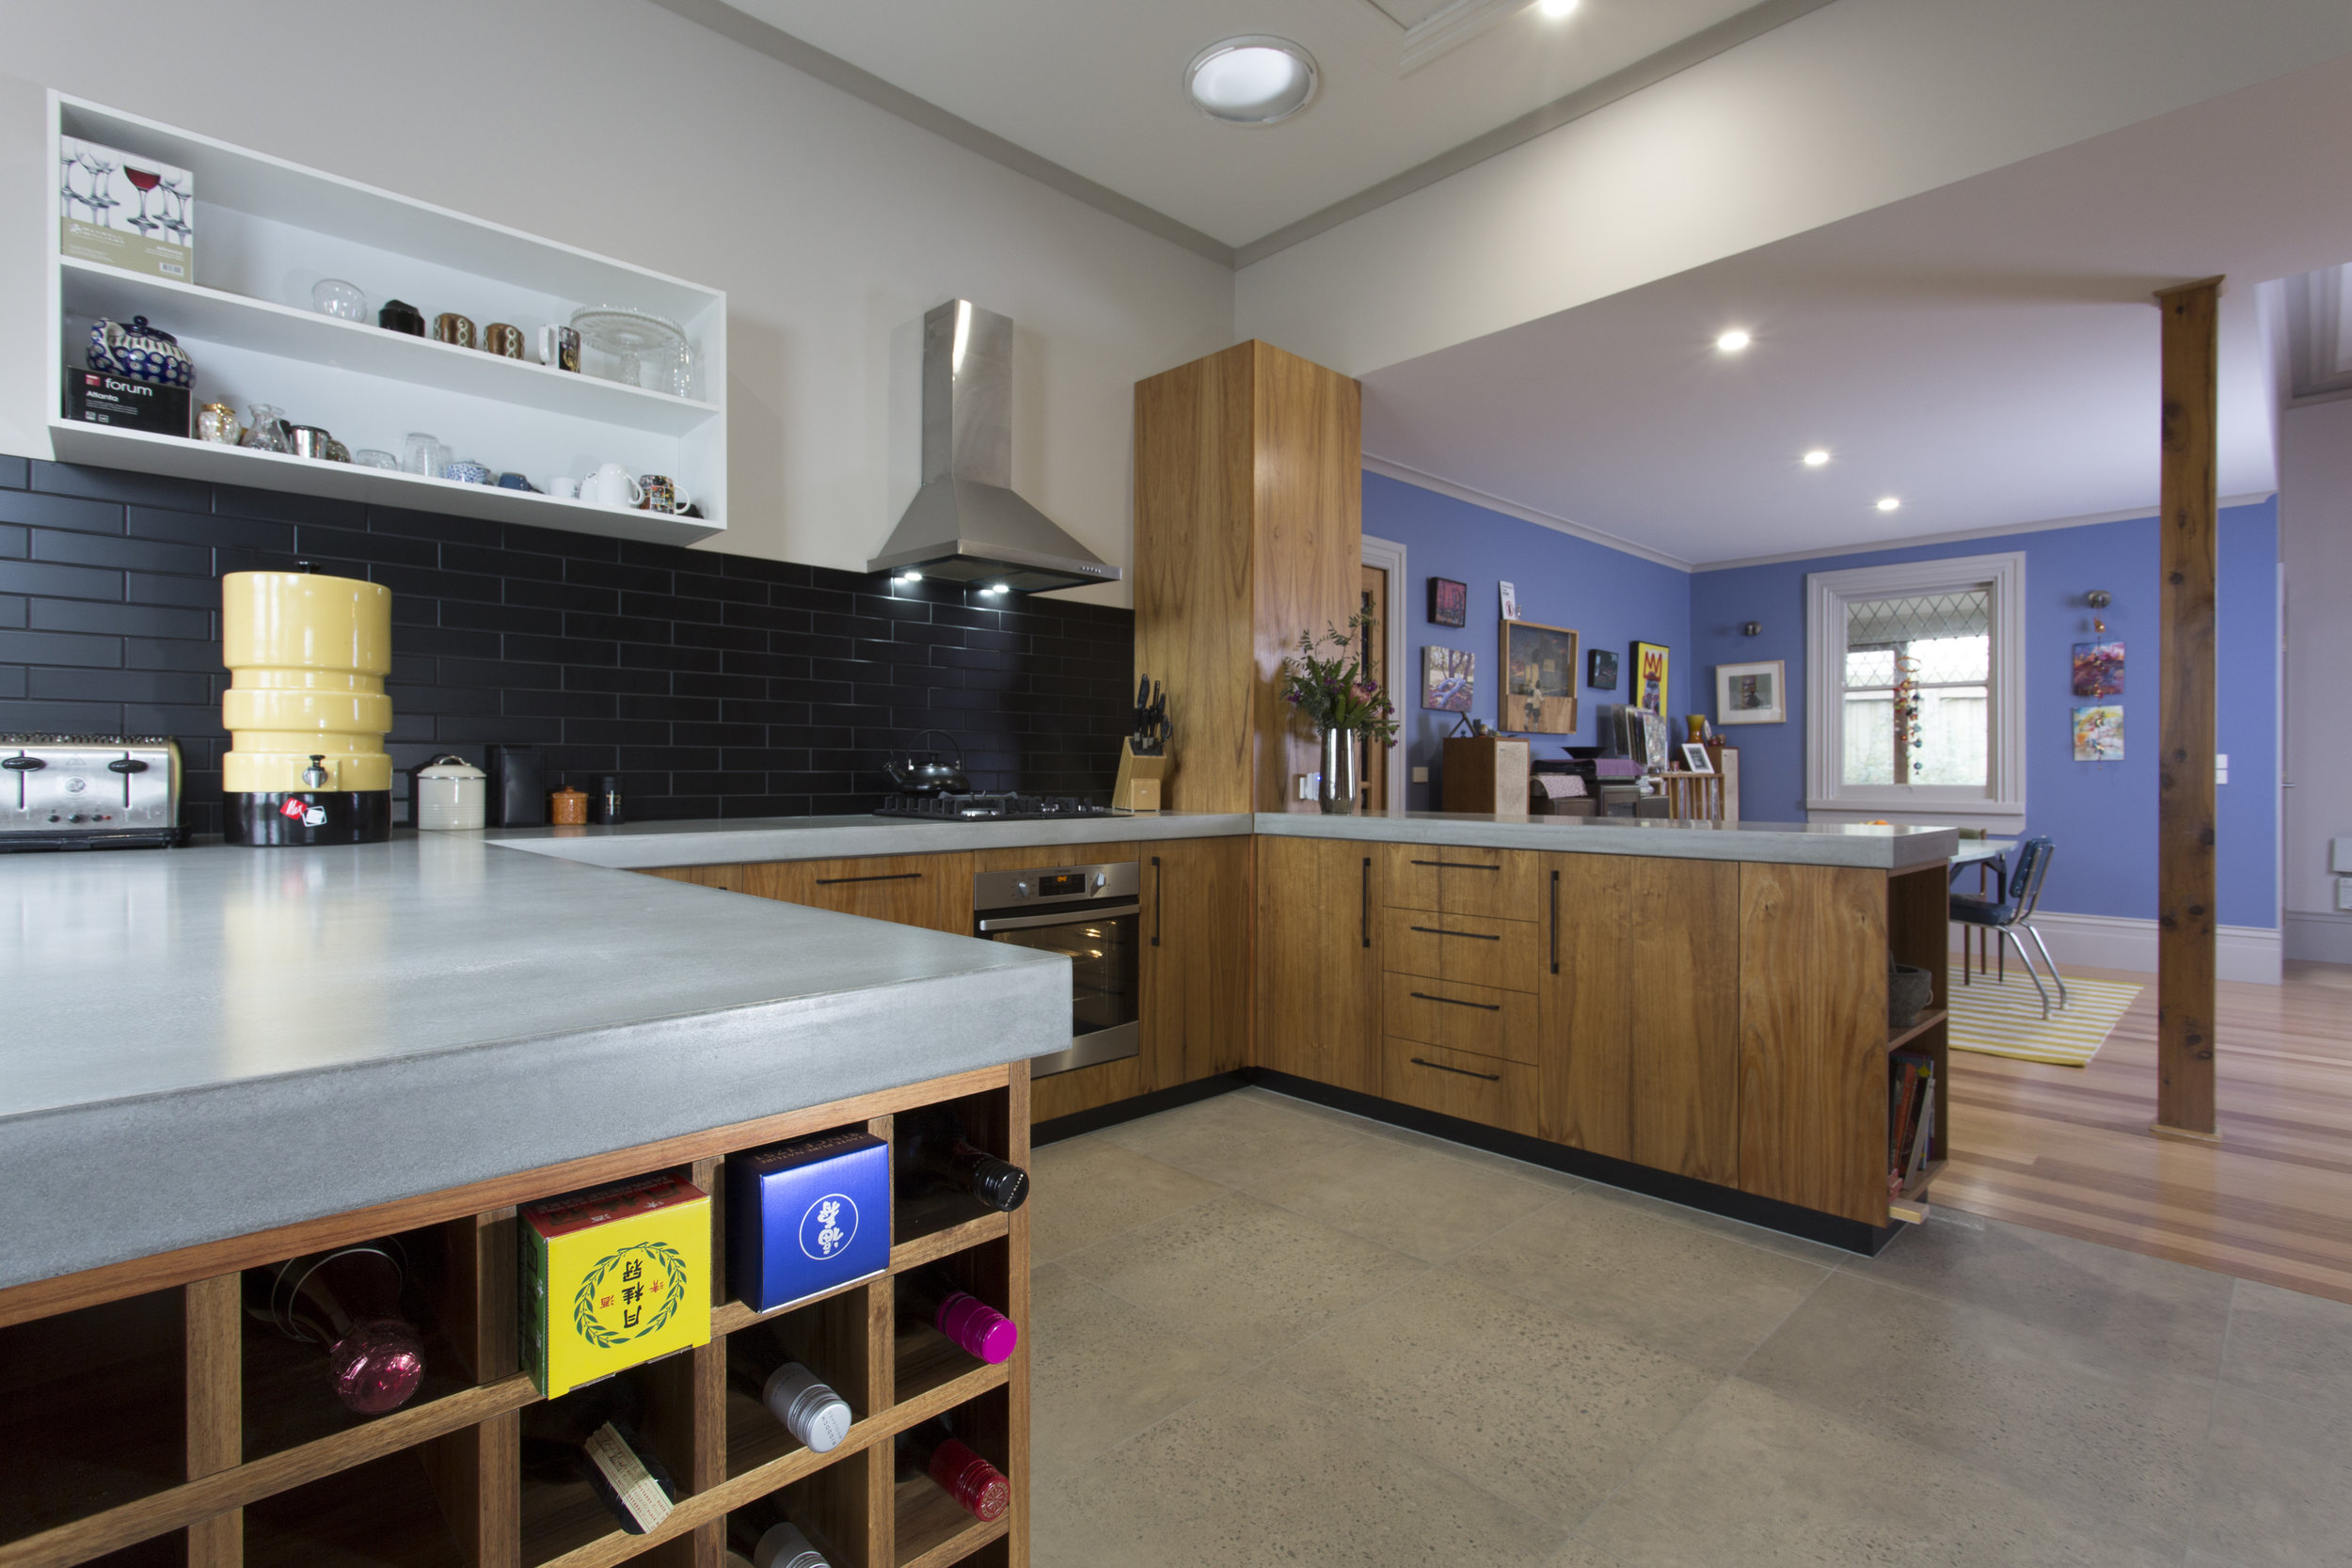 The new kitchen is a proud highlight for the owners. Concrete bench tops is a decision they will never regret.